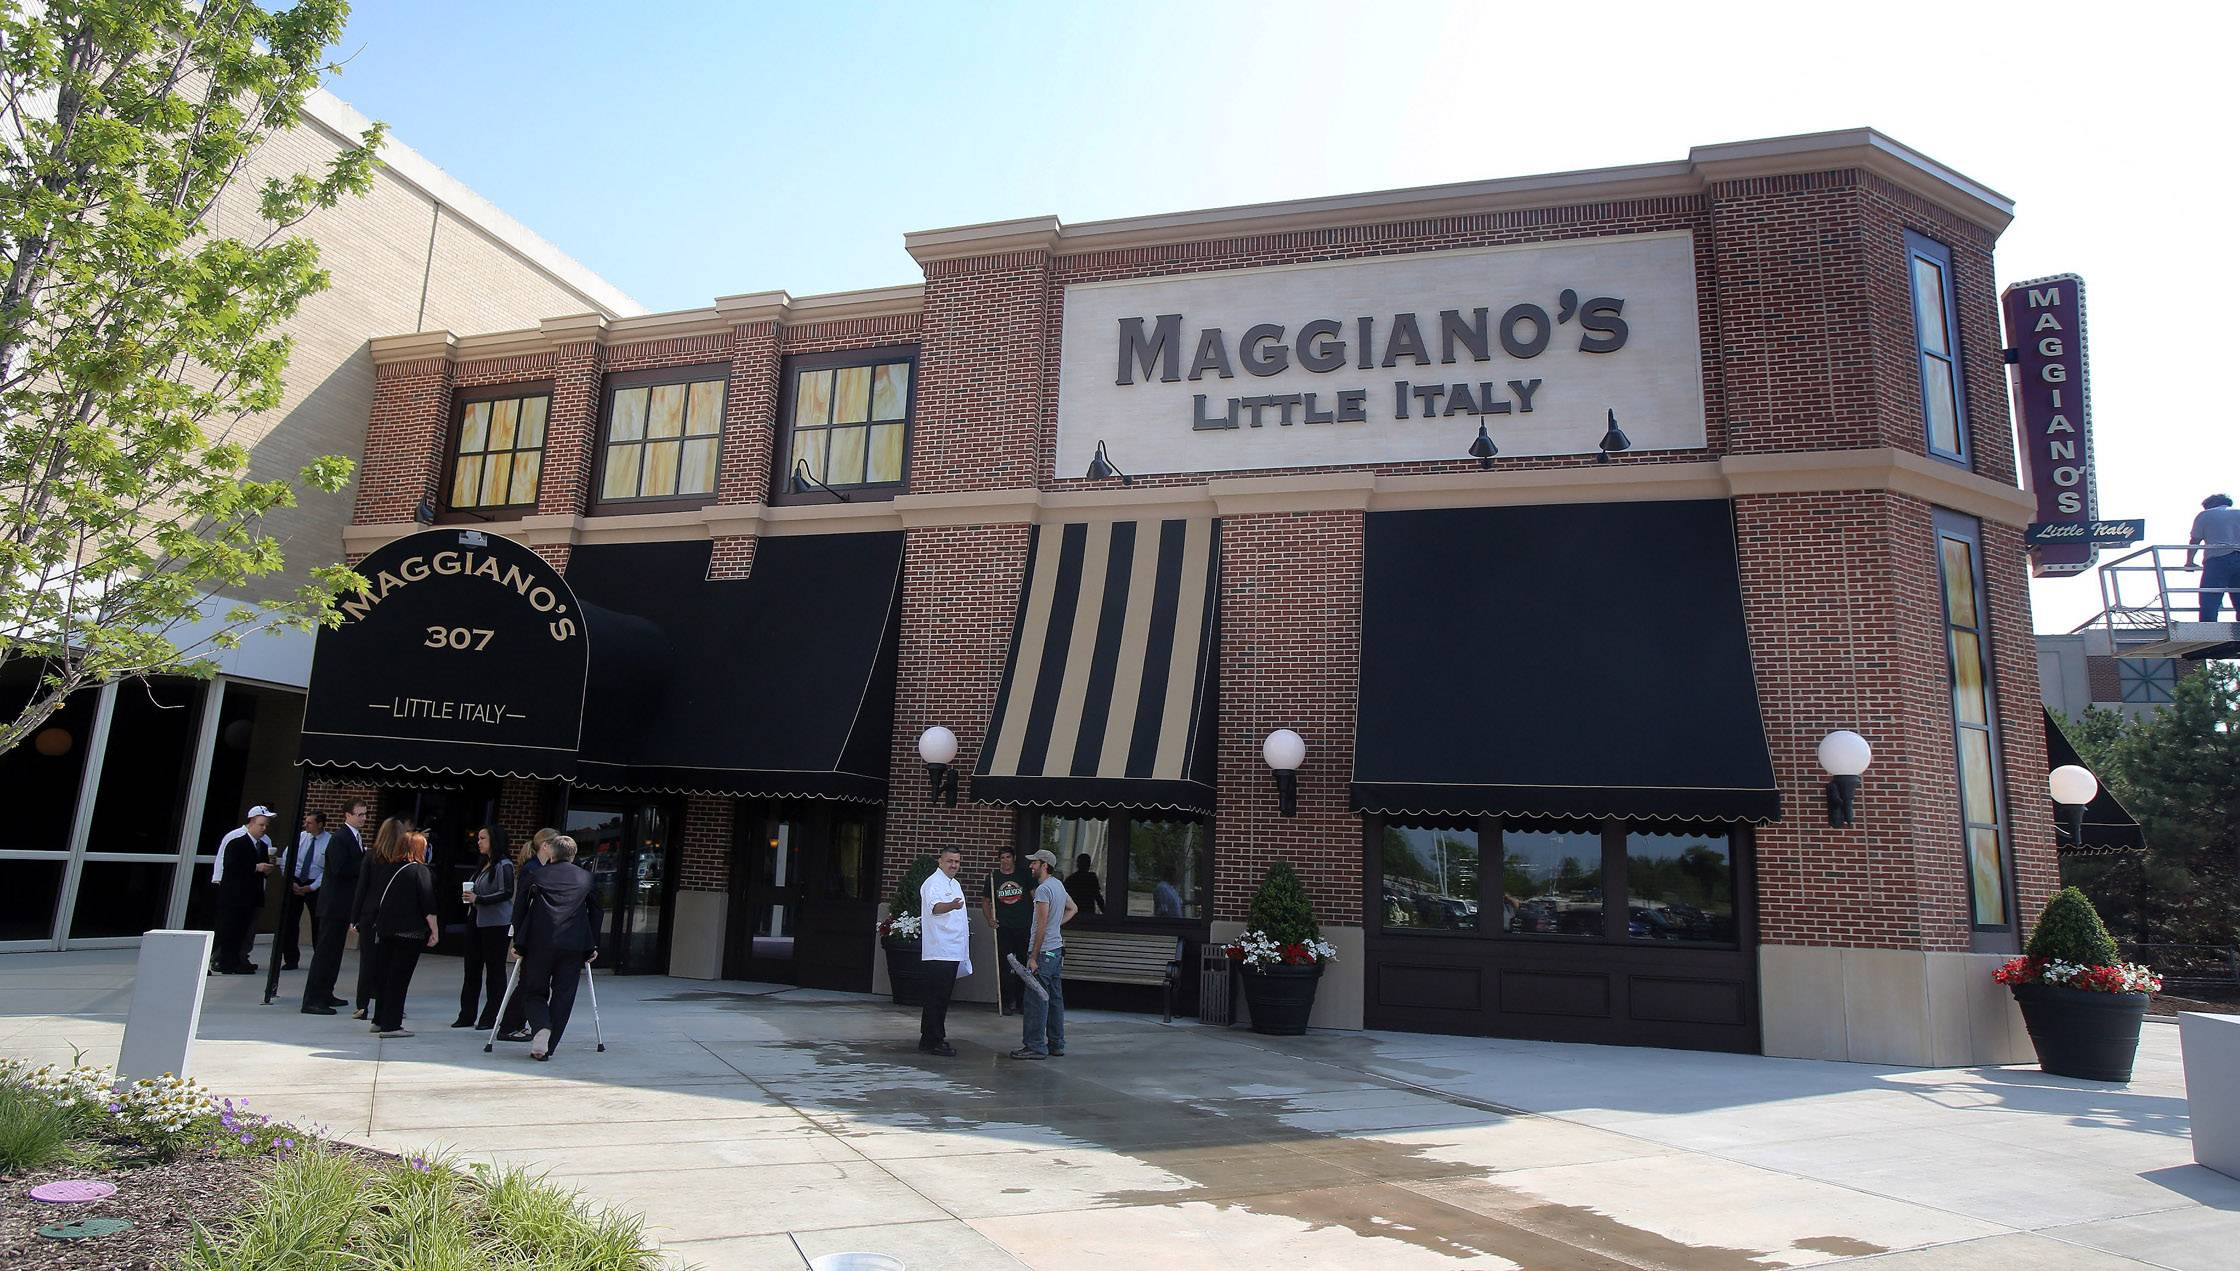 Maggiano's Little Italy opened last month at Westfield Hawthorn shopping center as part of a $50 million renovation and expansion. A home rule sales tax is expected to be implemented by the village, in part, to fund a $1.2 million annual sales tax rebate to Westfield.